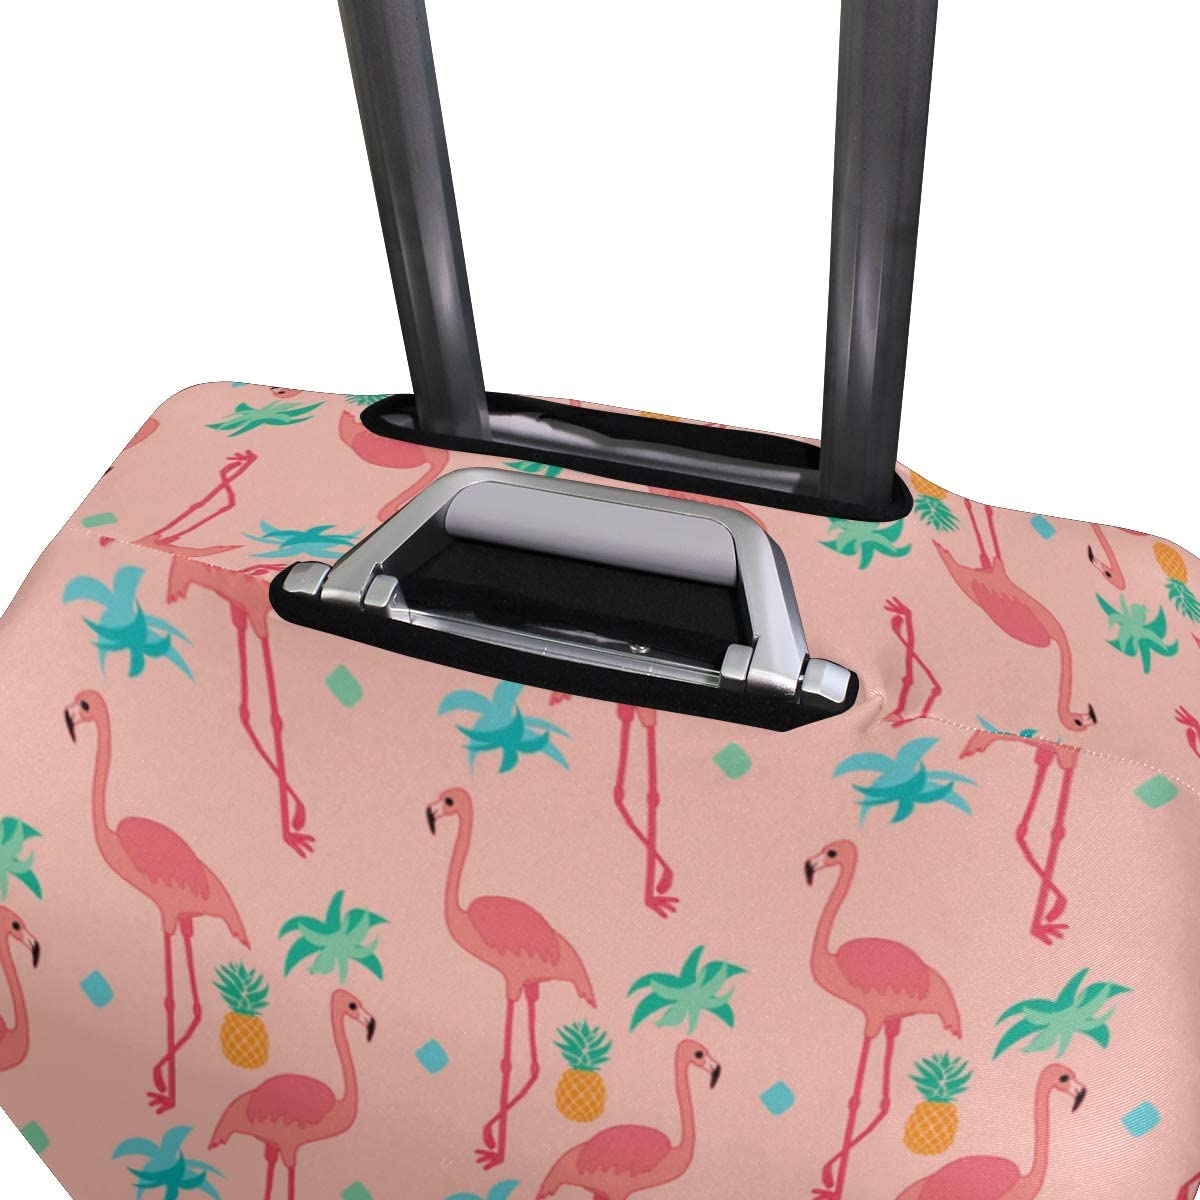 MALPLENA Flamingo With Garland Wallpaper Luggage Protector Suitcase Cover